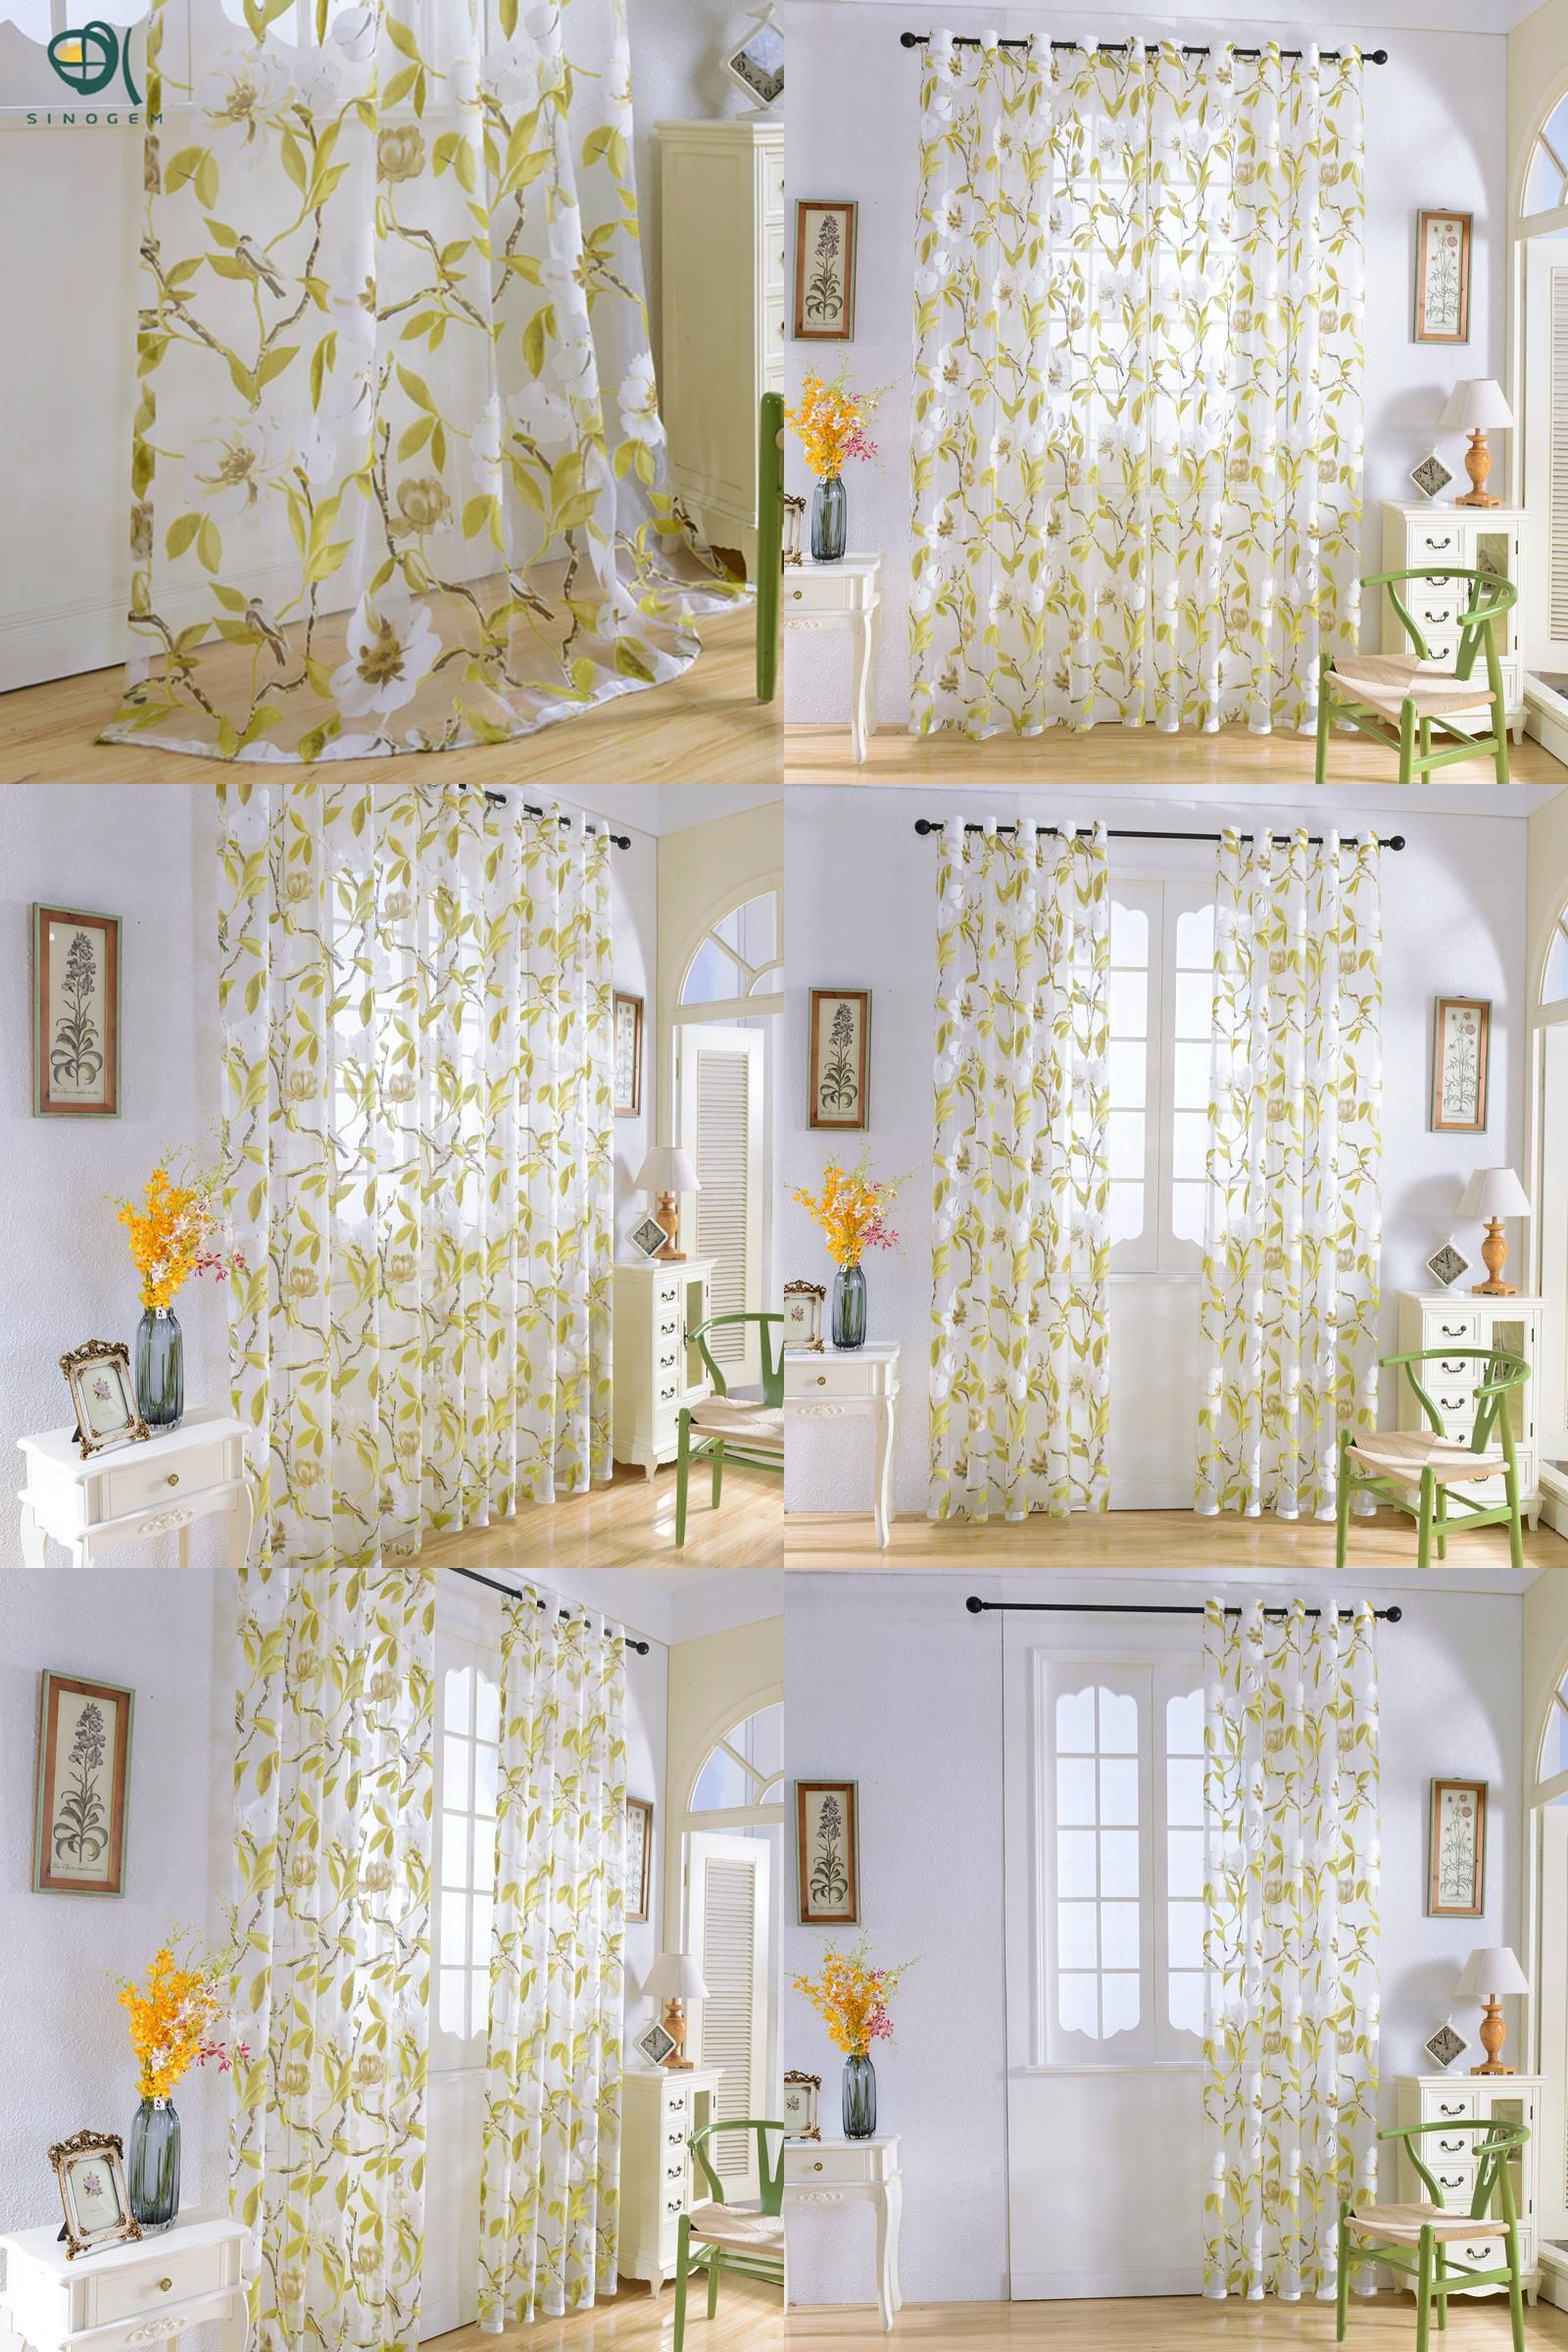 [Visit To Buy] Sinogem Flowers Birds Curtains Tulle Window Curtain For  Living Room Bedroom